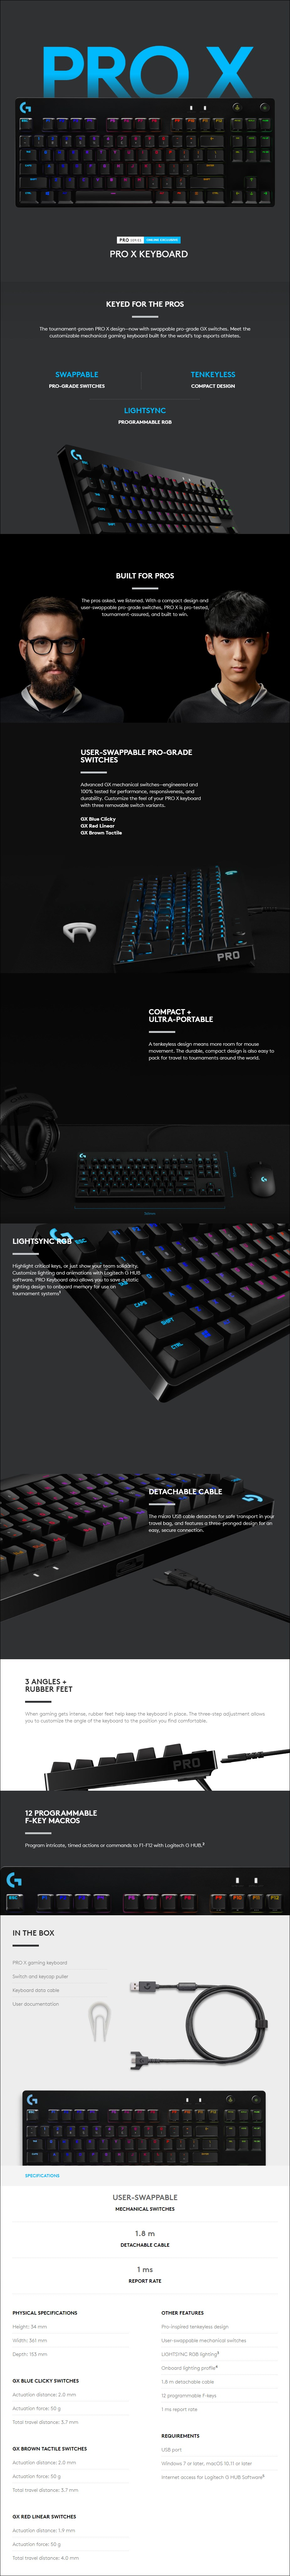 Logitech G Pro X TKL Modular Mechanical Gaming Keyboard - GX Blue Clicky